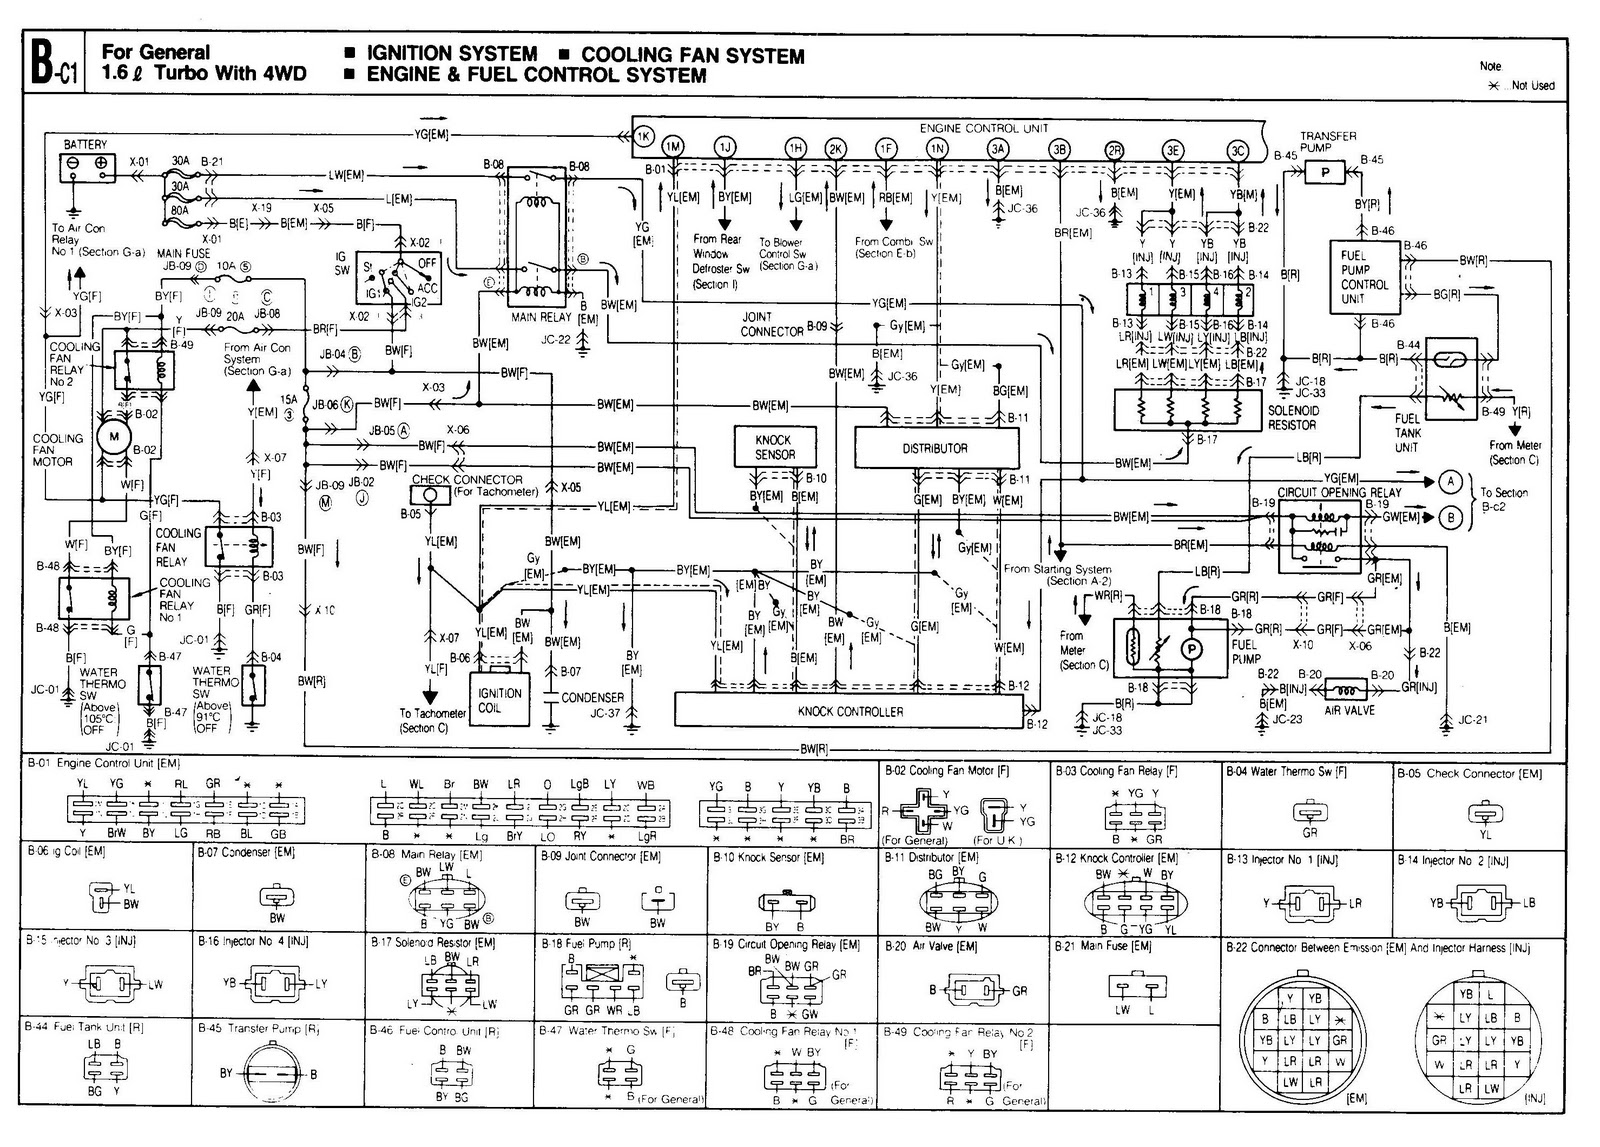 mazda 323 engine fuse box diagram mazda bp wiring diagram mazda wiring diagrams wiring diagram